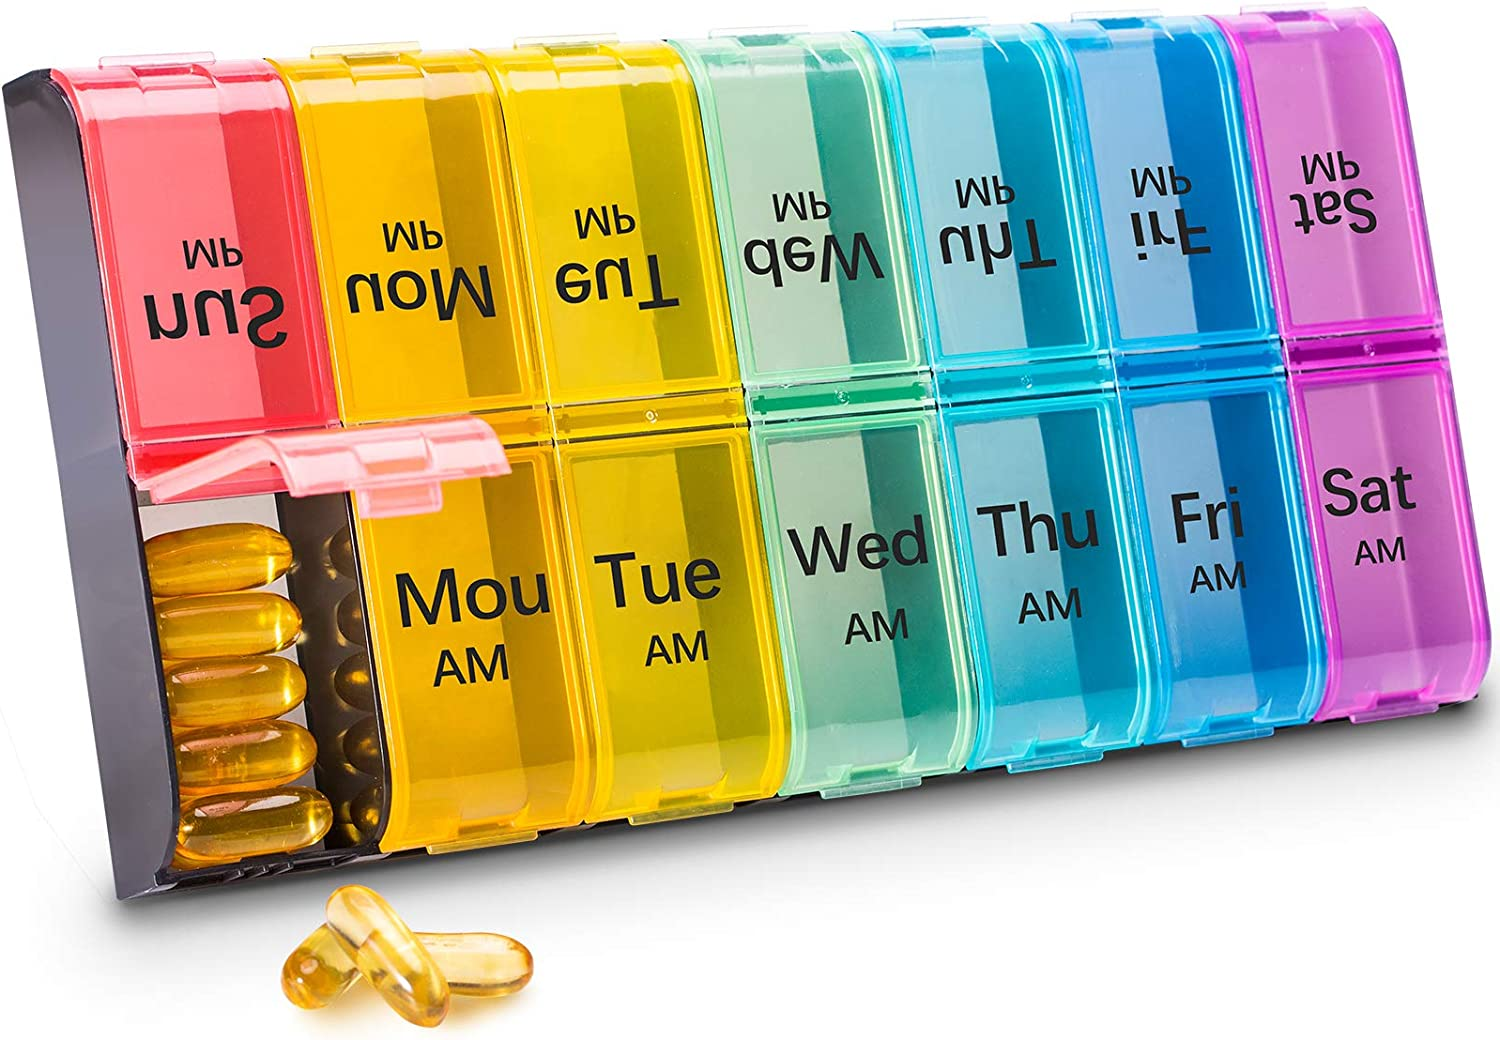 Large Pill Organizer 2 Times a Day - AM PM Pill Box 7 Day, XL Weekly Pill Cases Organizers, Day Night Pill Case, BPA Free Pill Container, Daily Pill Organizer for Vitamins, Fish Oils (Multi-Color)